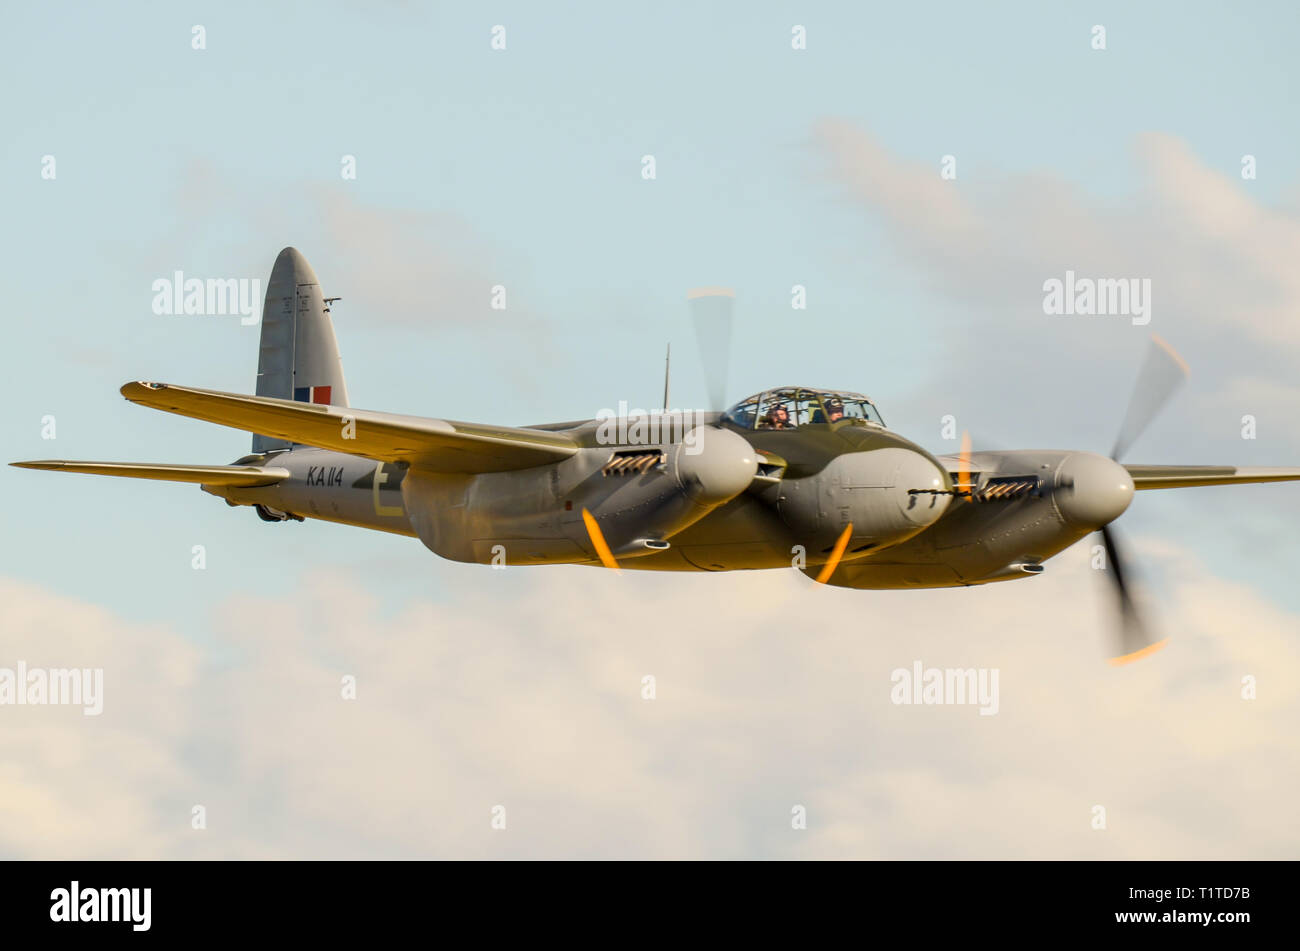 de Havilland DH.98 Mosquito was a British multi-role combat aircraft with a two-man crew that served during and after WWII. Restored to flight - Stock Image